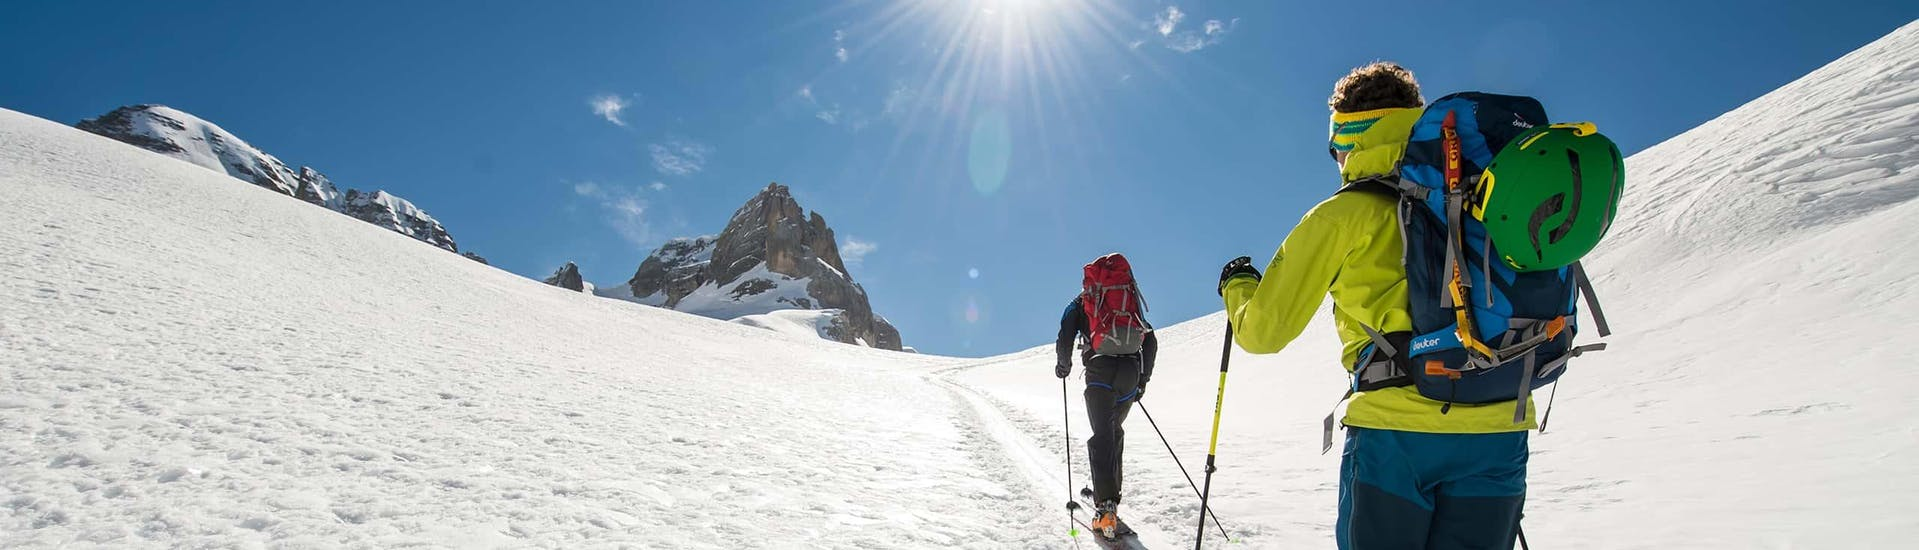 A skier following his Skitouring with a Professional from Arnold Span up to the top of the mountain while out ski touring.